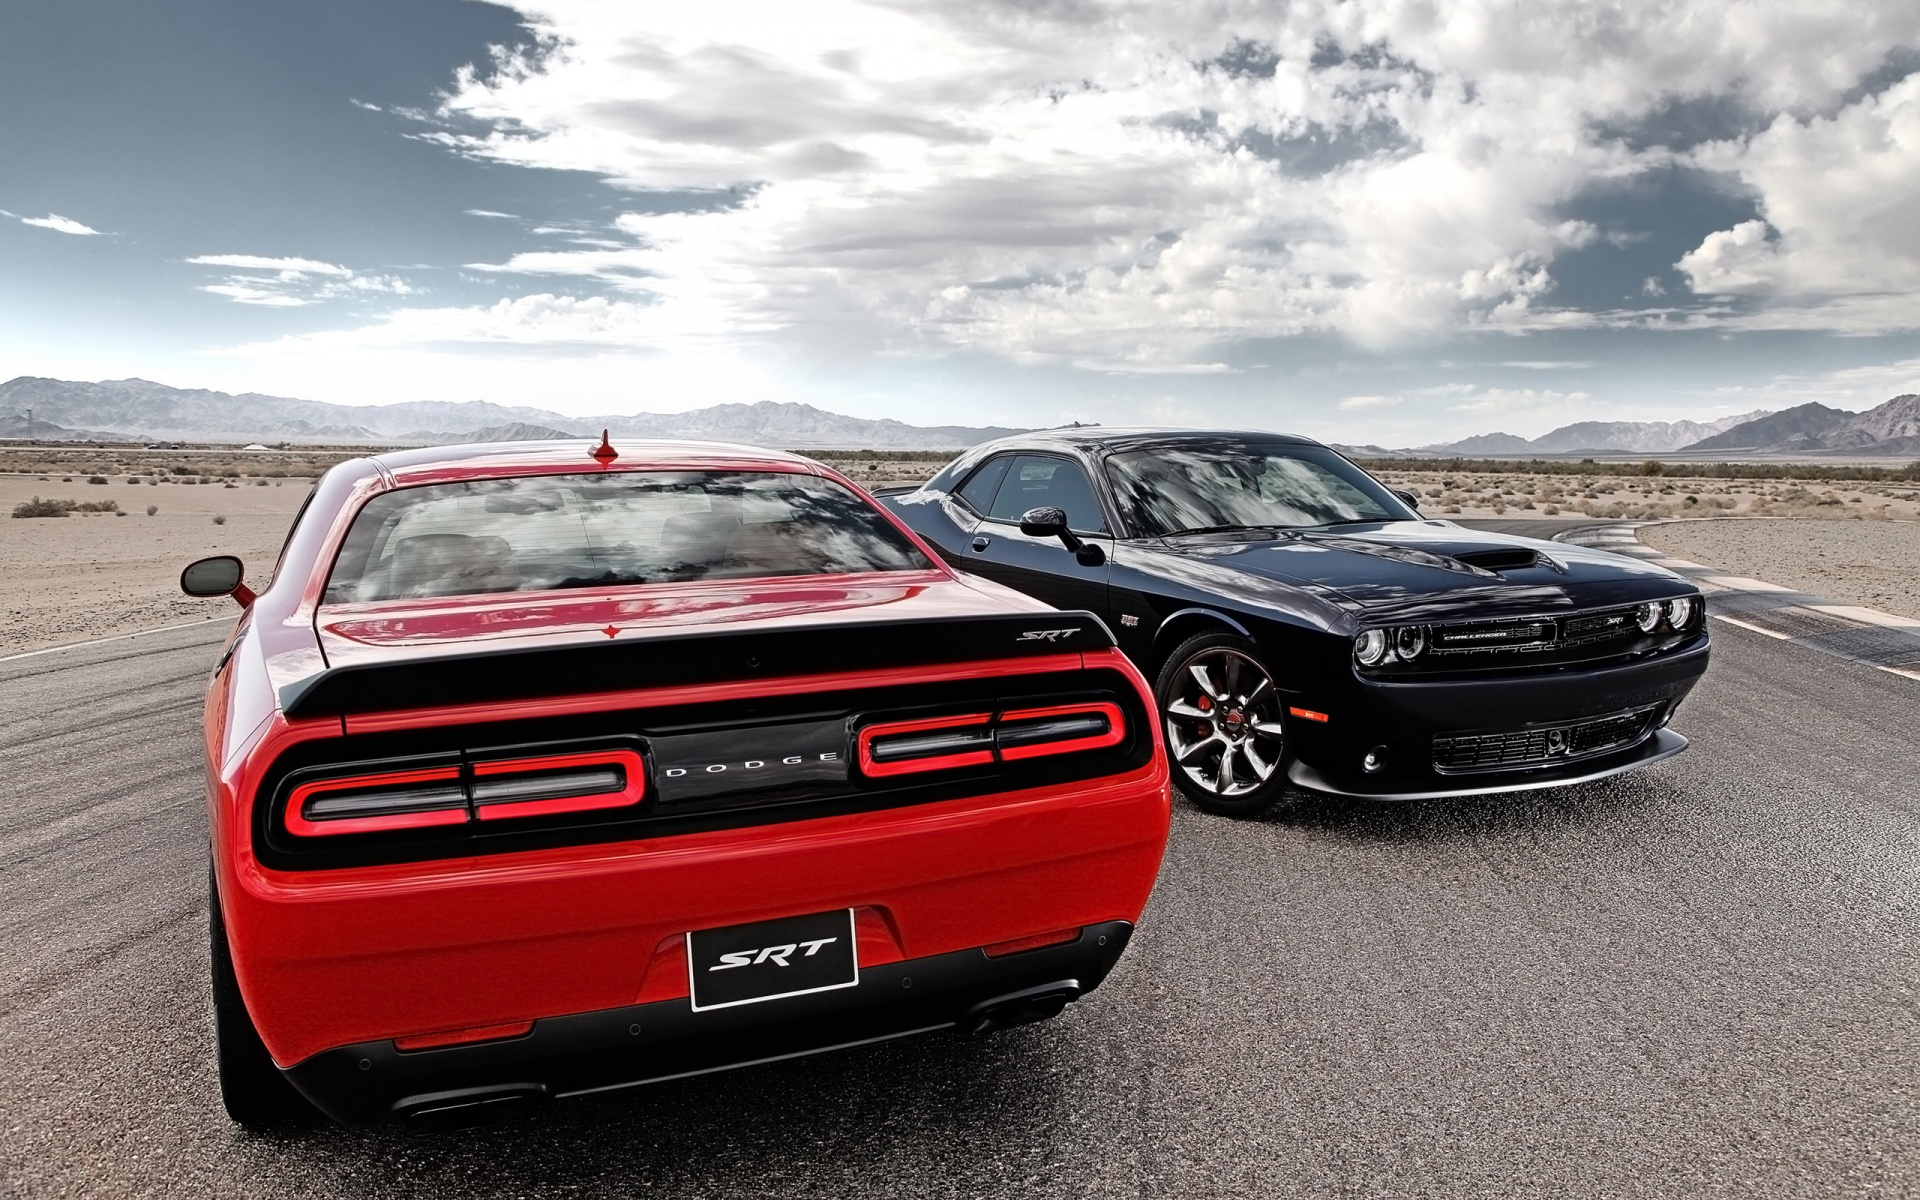 2015 Dodge Challenger SRT Cars Wallpaper HD Car Wallpapers 1920x1200